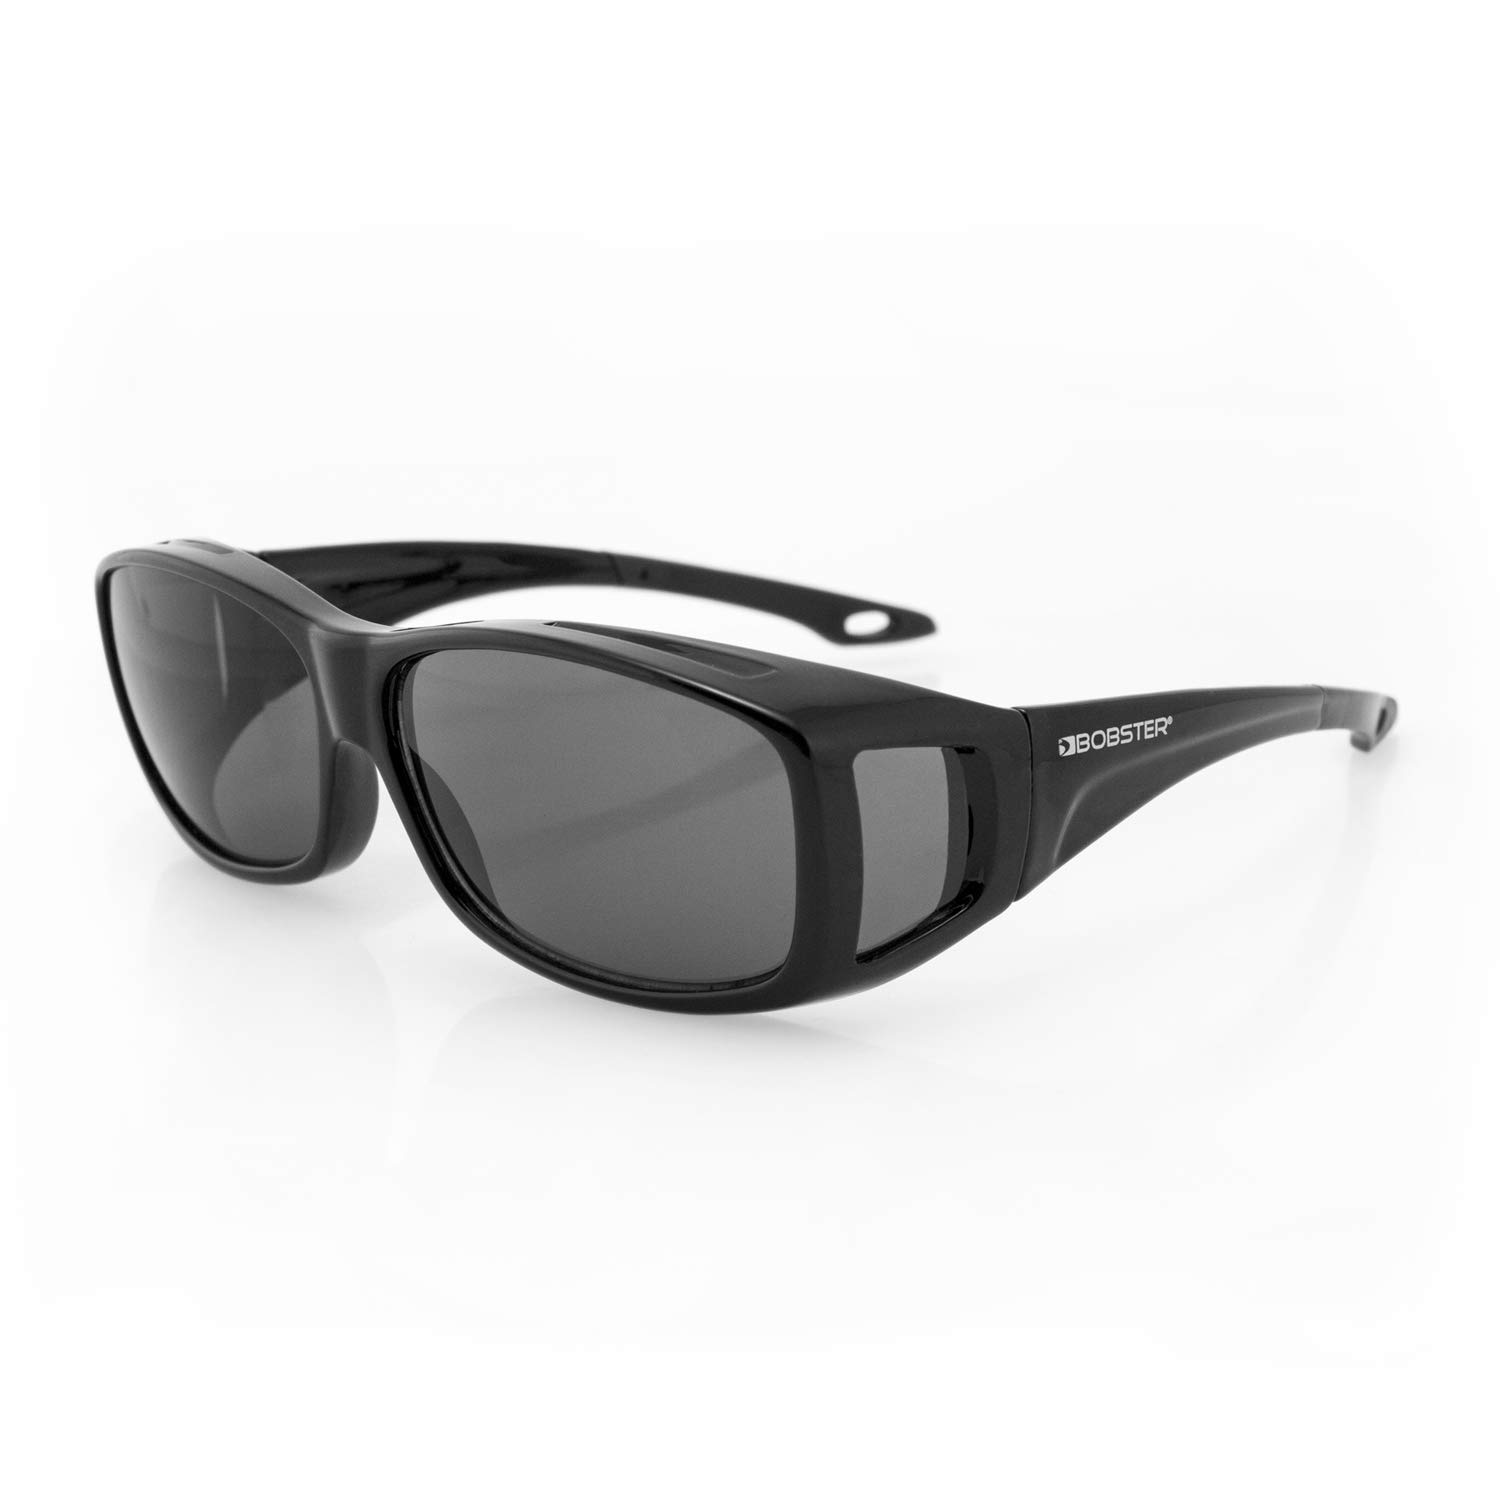 Bobster Condor 2 OTG Sunglasses with Anti-fog Lens 4003374-P